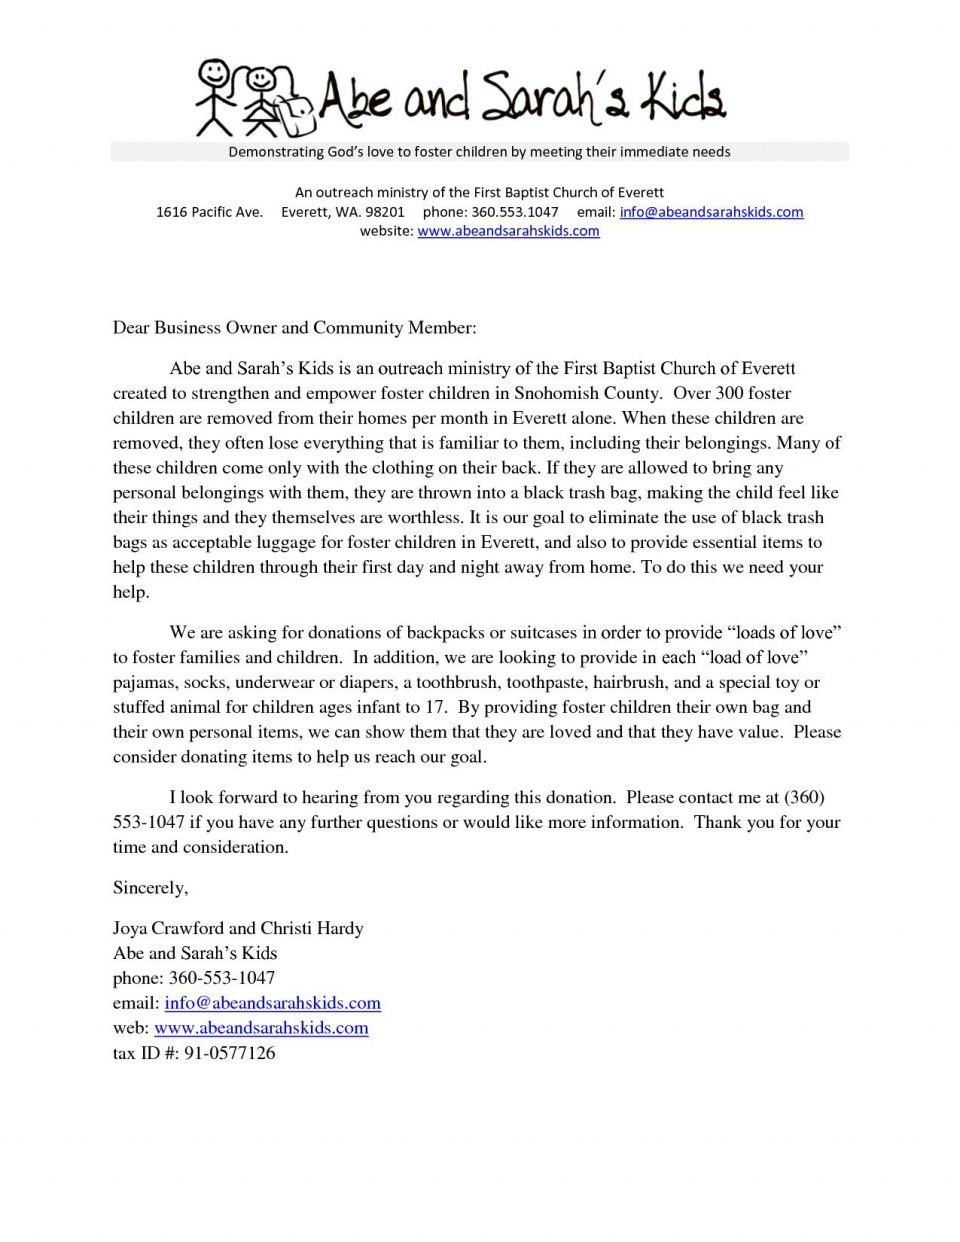 002 Stunning Fund Raising Letter Template Design  Fundraising For Mission Trip School Sample Of A Nonprofit Organization960